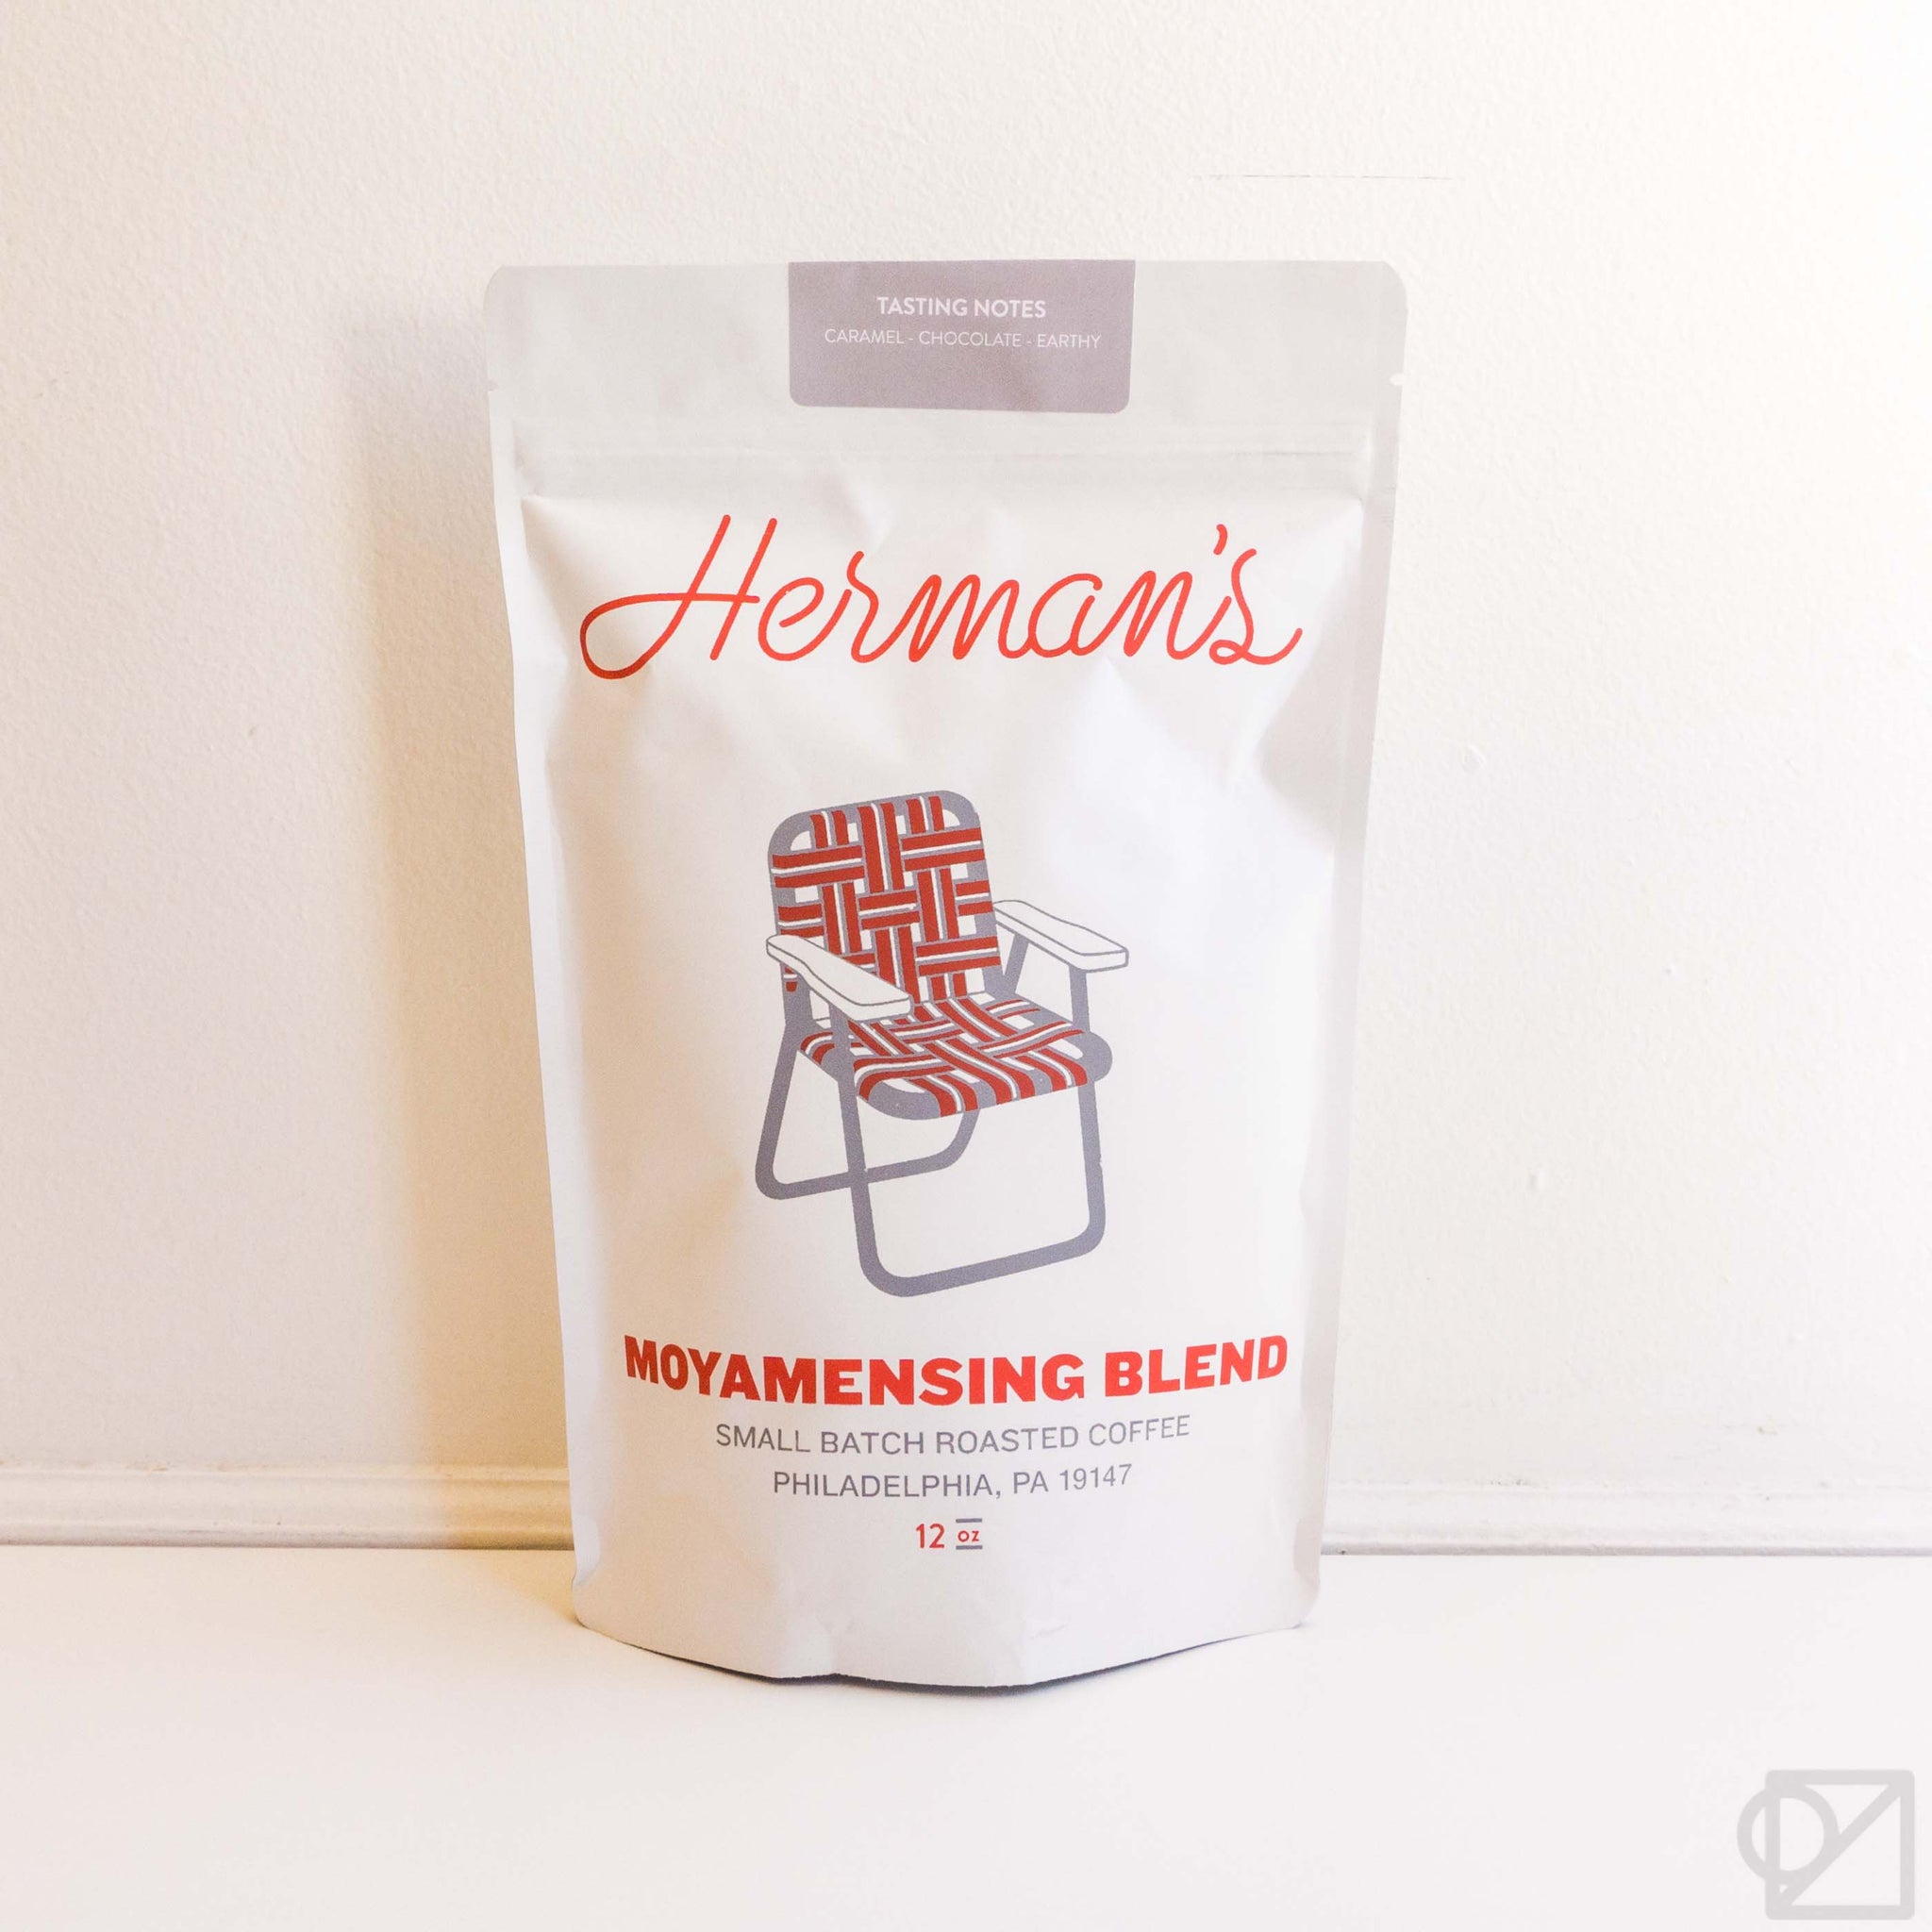 Herman's Moyamensing Blend  12oz Bag of Coffee Beans